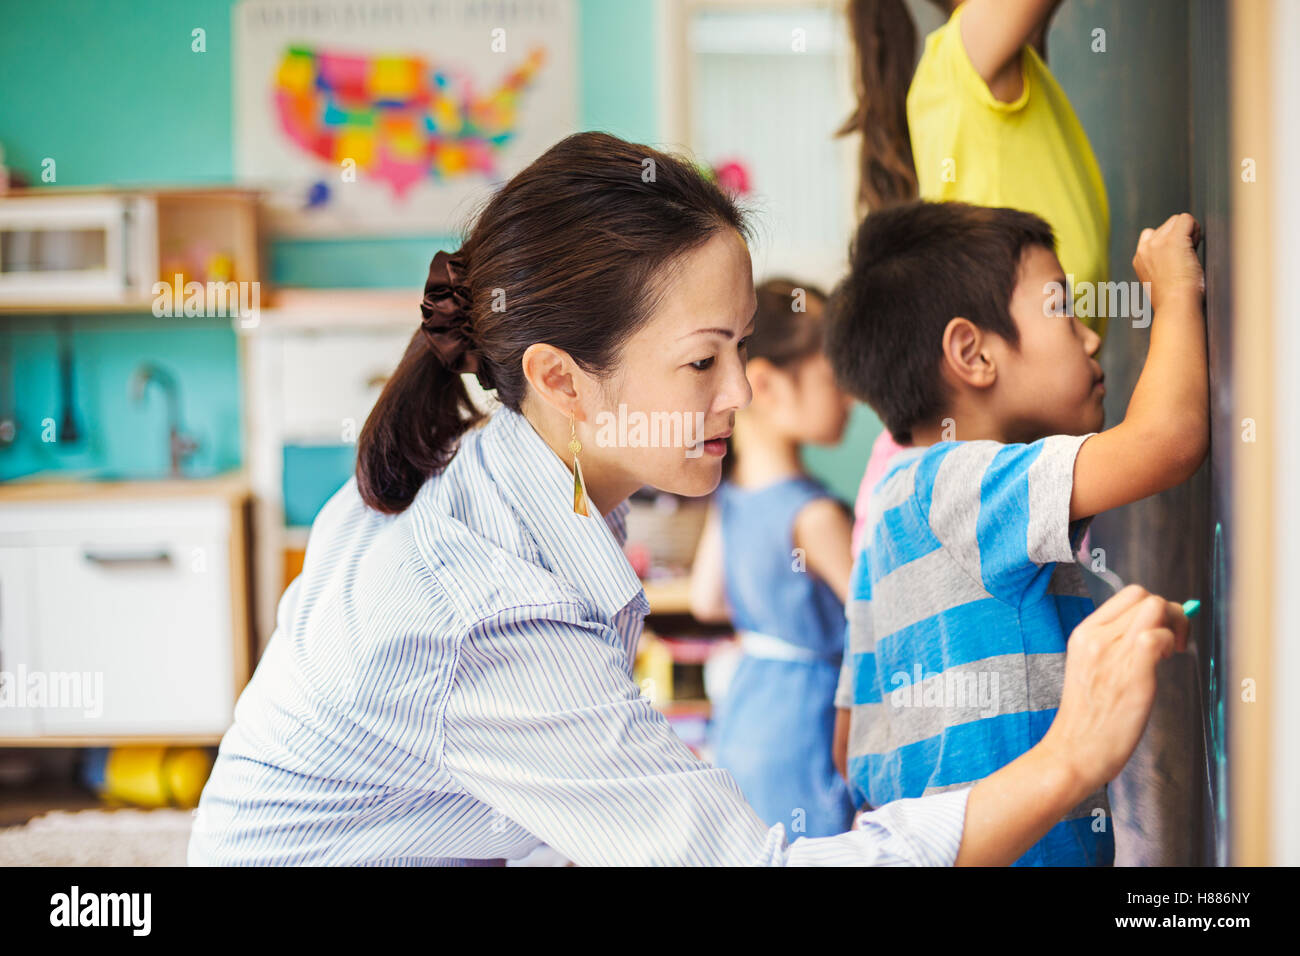 A group of children writing on the chalkboard with their teacher. - Stock Image